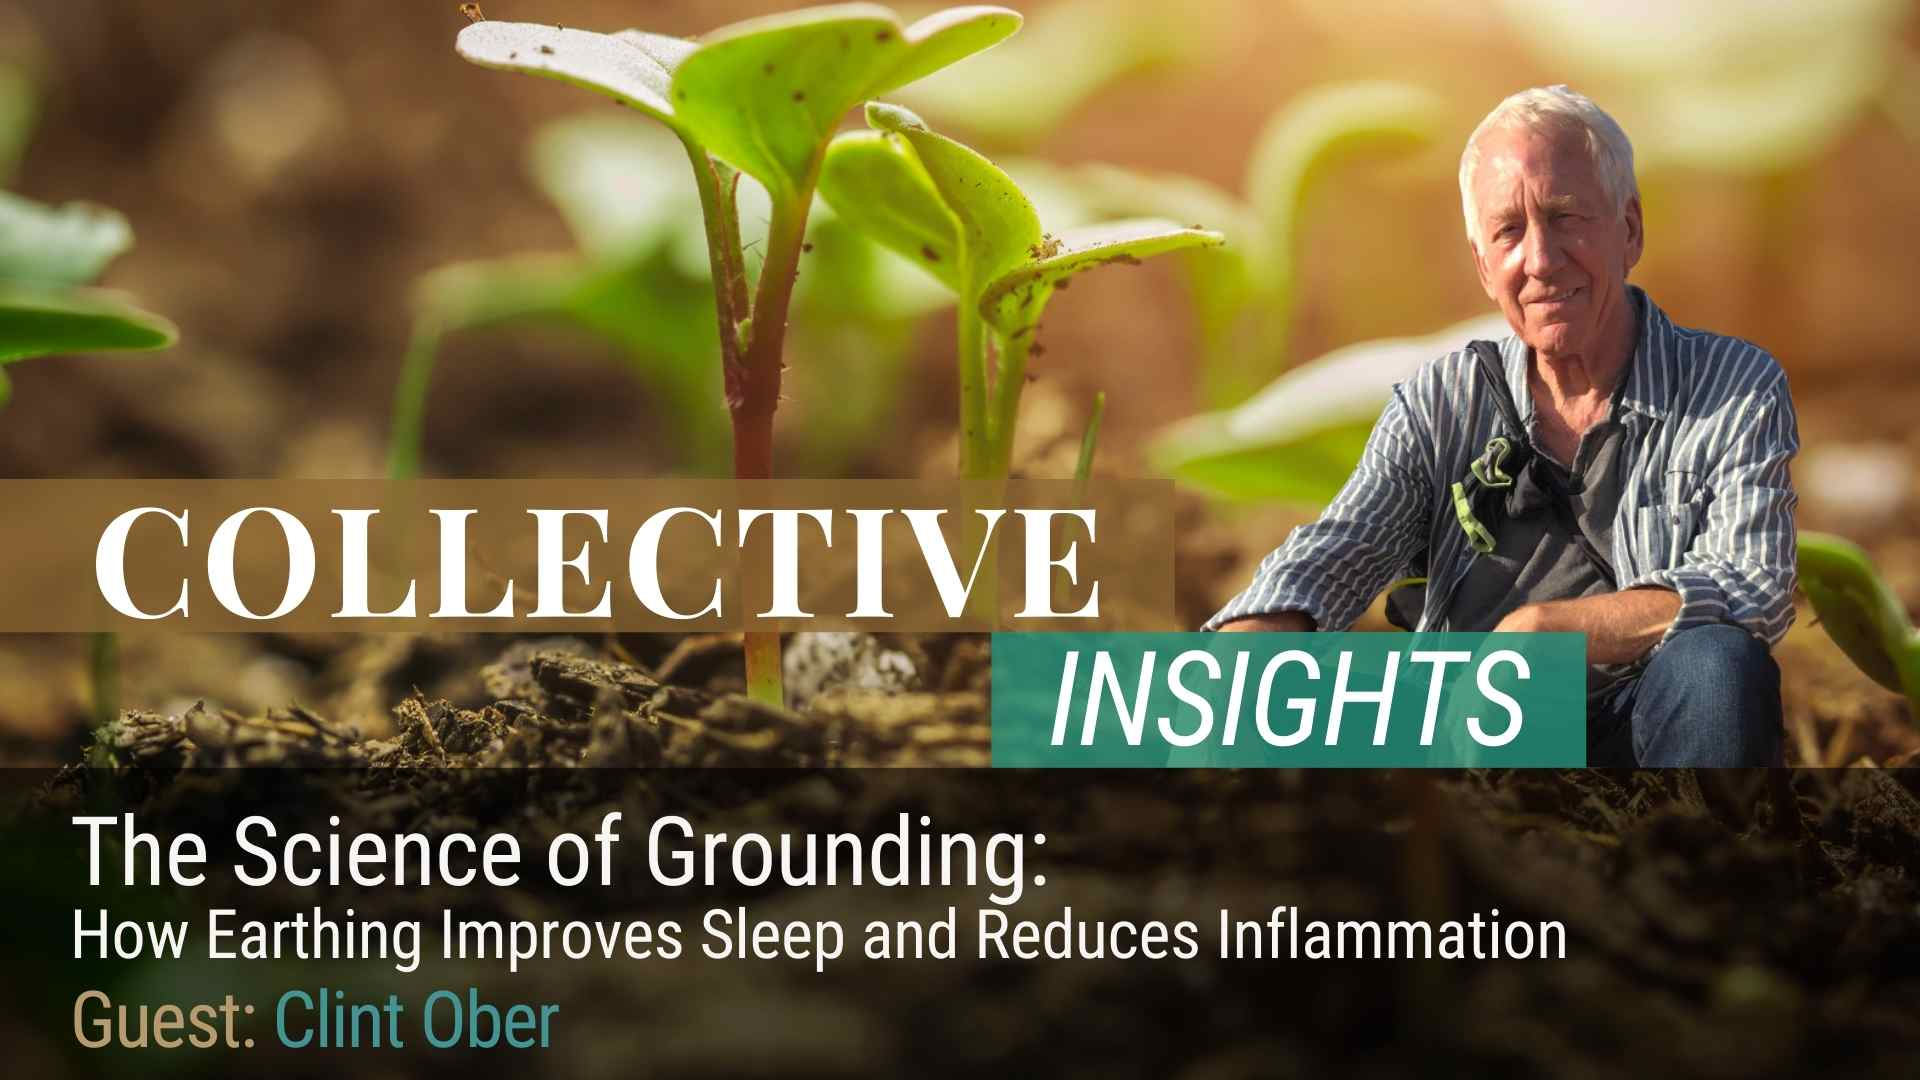 The Science of Grounding: How Earthing Improves Sleep and Reduces Inflammation